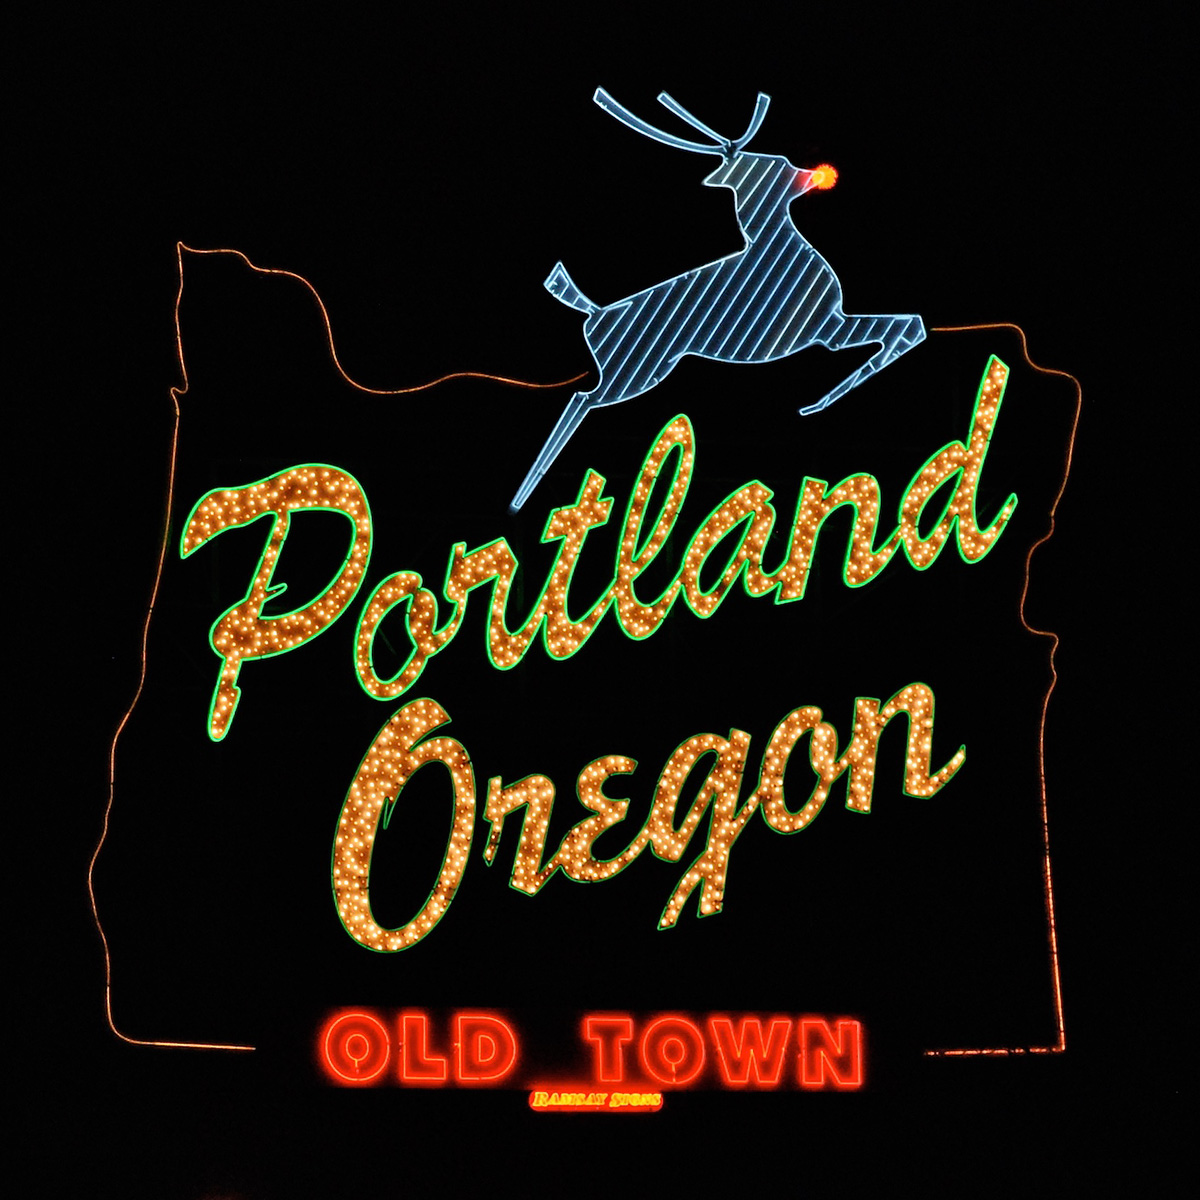 portland sign leaping stag